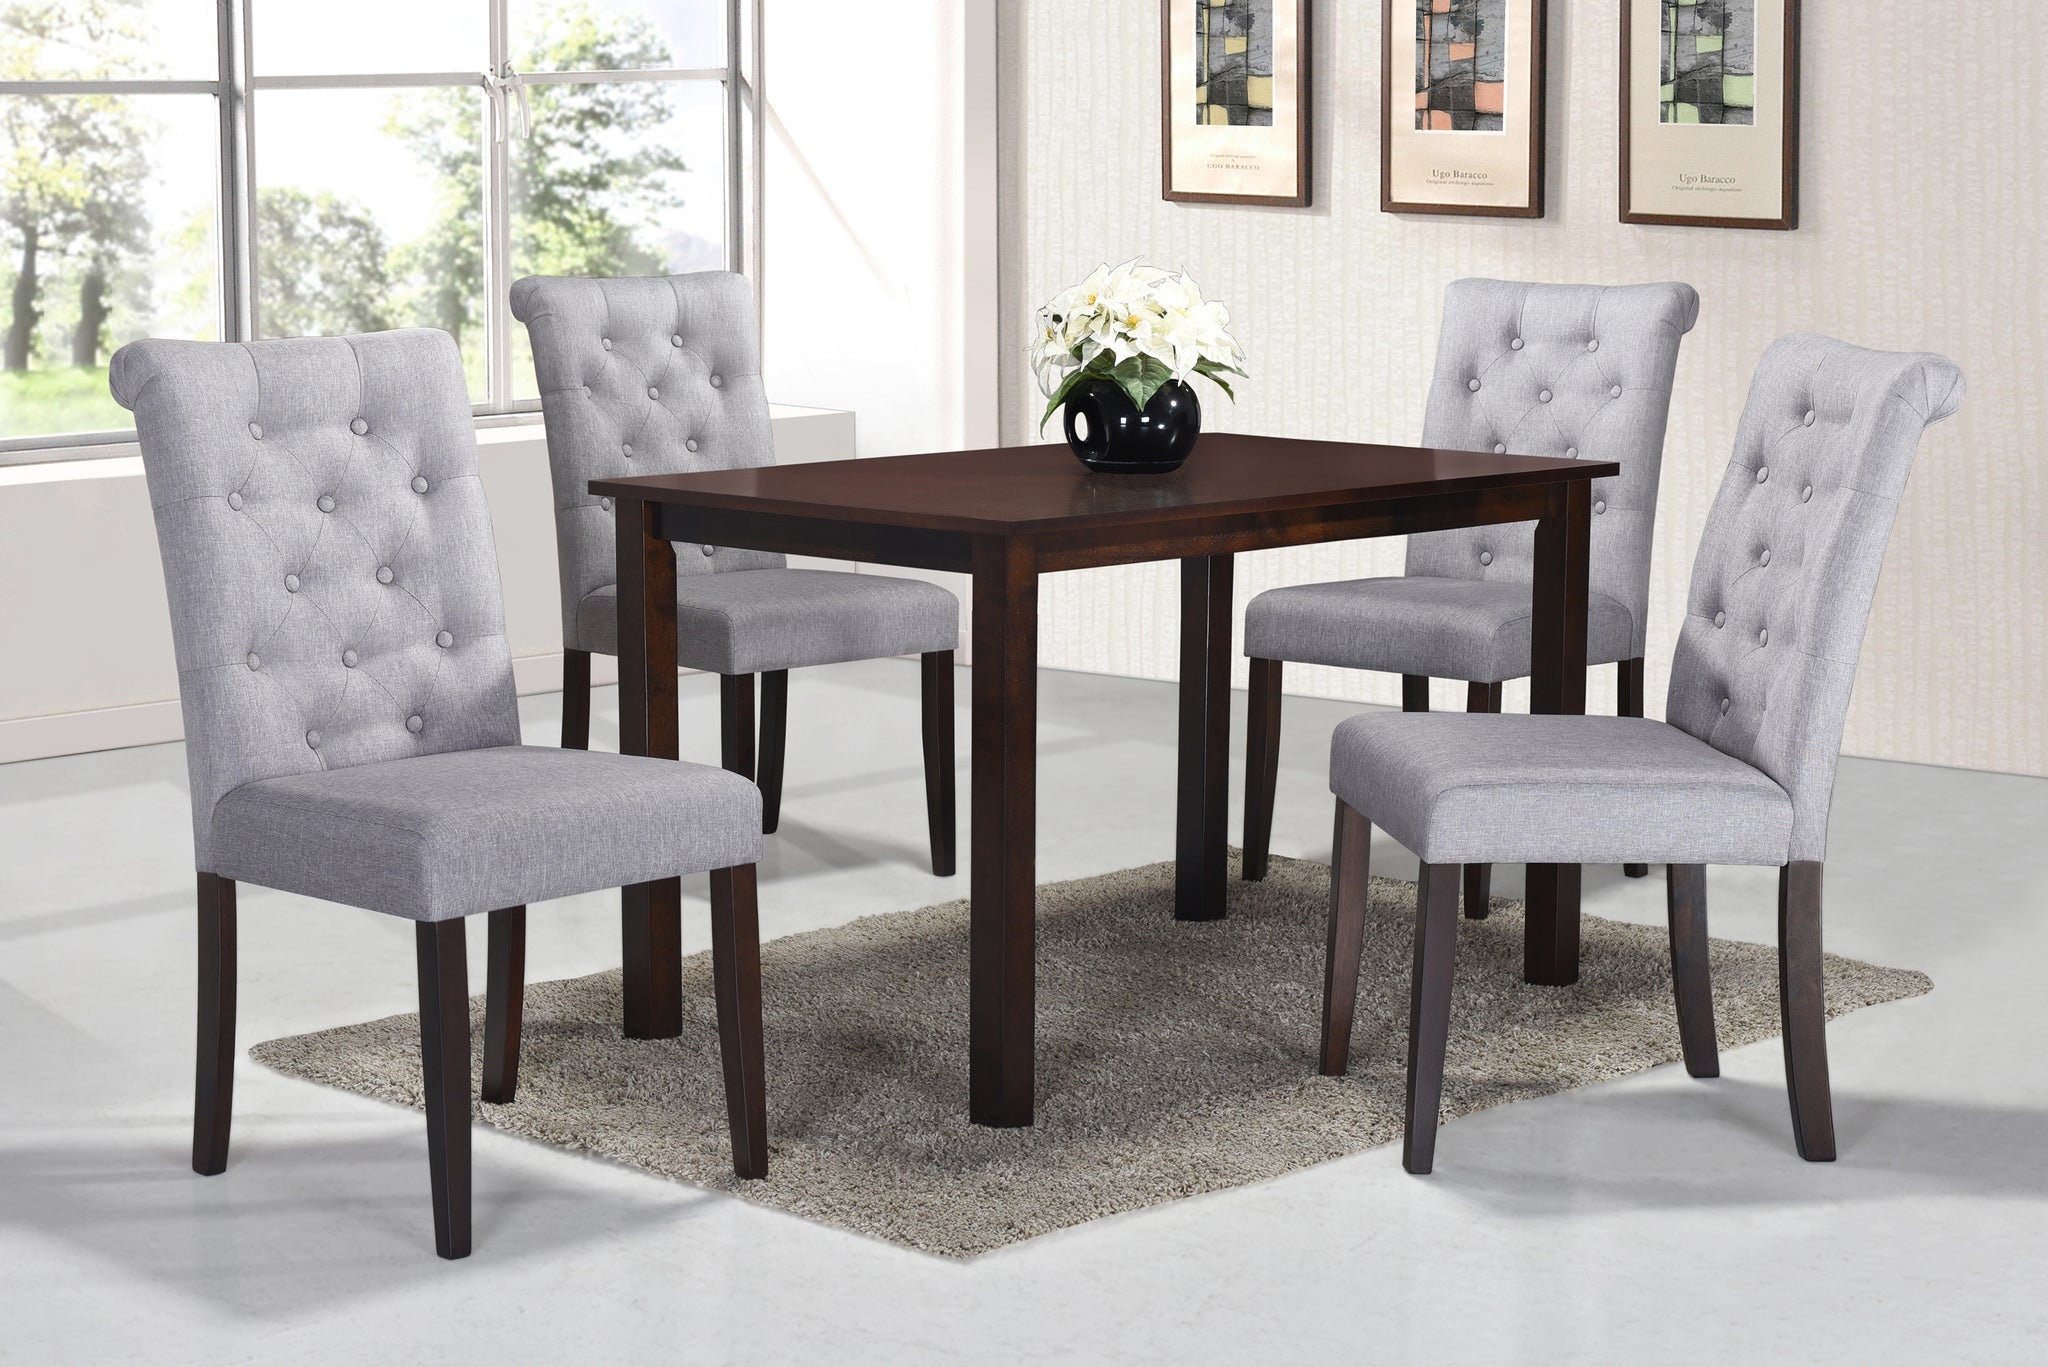 Roxy Light Grey 5 Pc. Dining Set